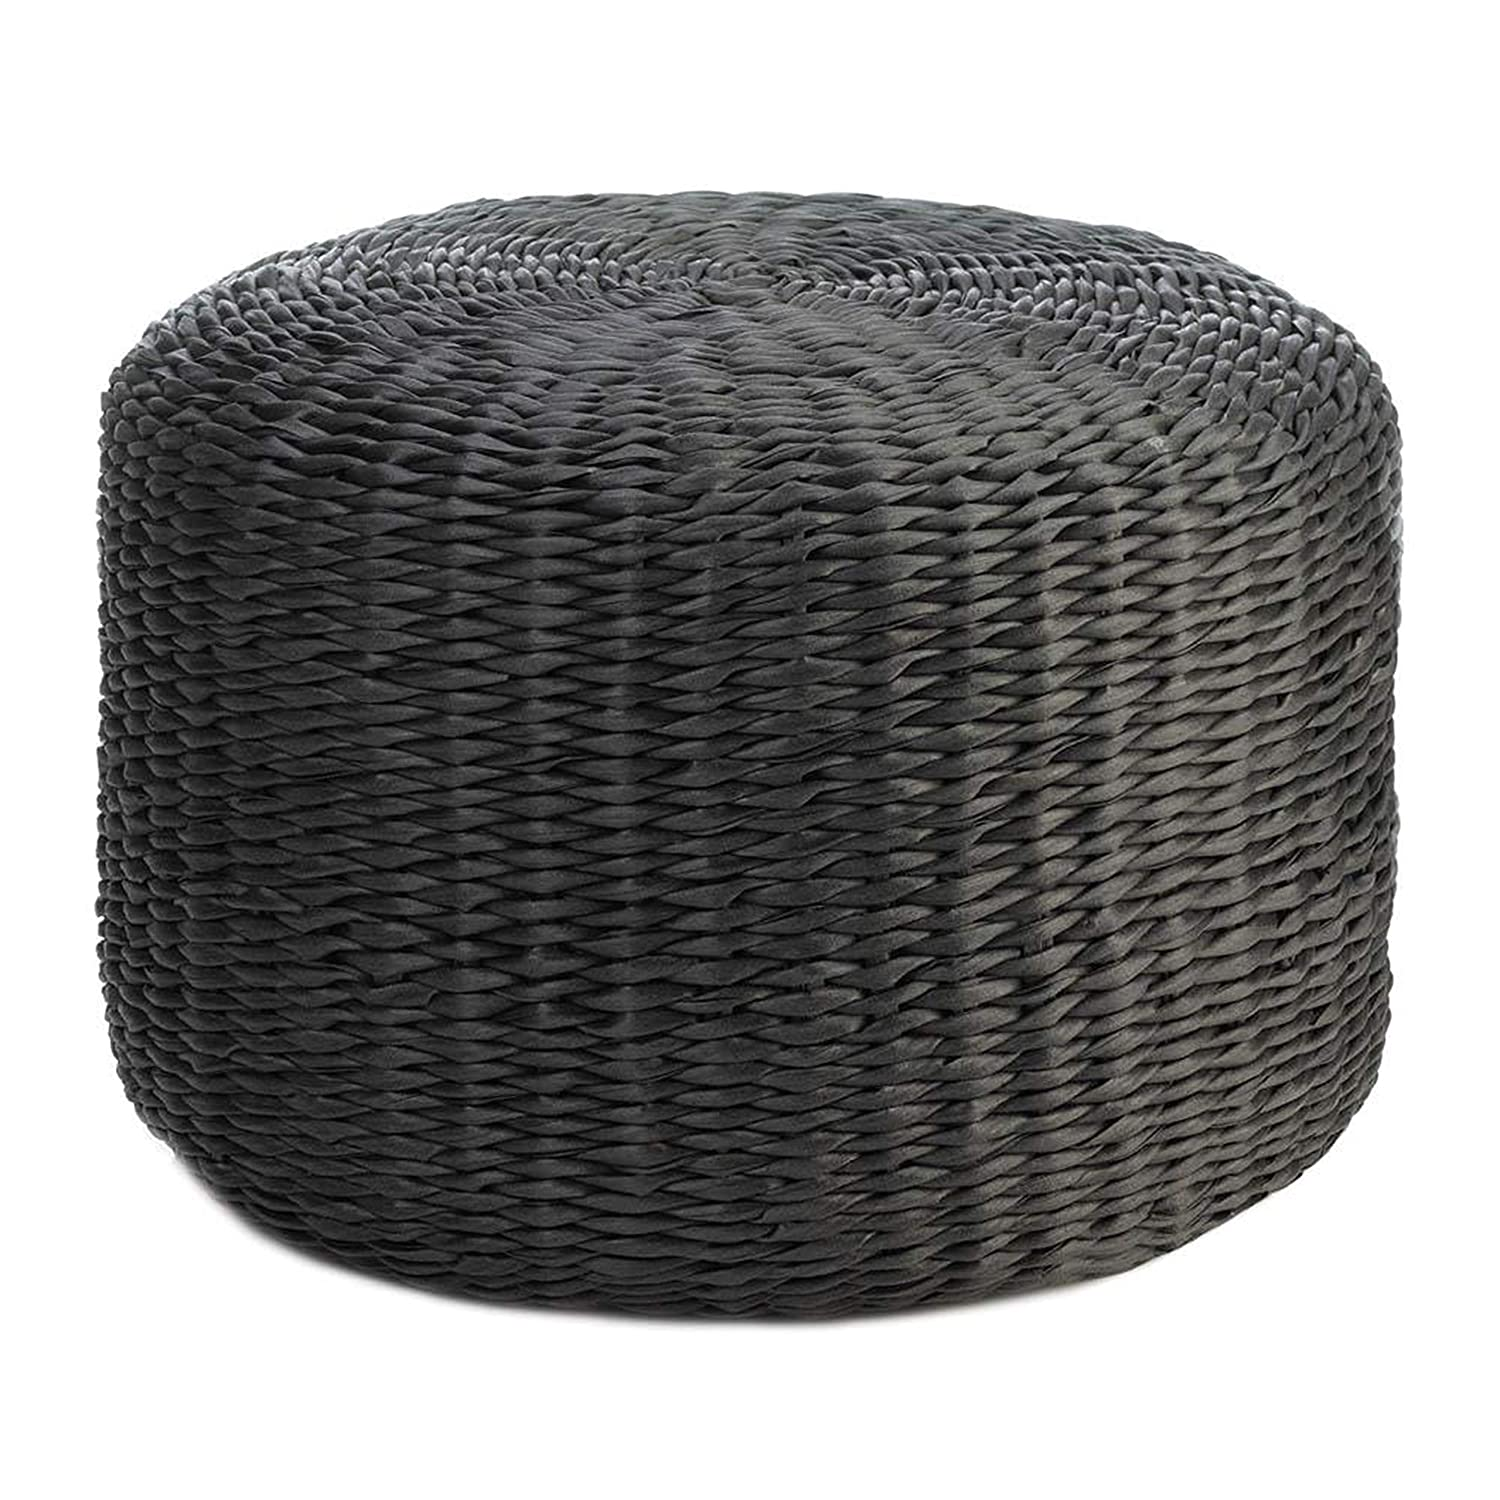 Fine Amazon Com Round Wicker Ottoman All Weather Woven Ottomans Alphanode Cool Chair Designs And Ideas Alphanodeonline